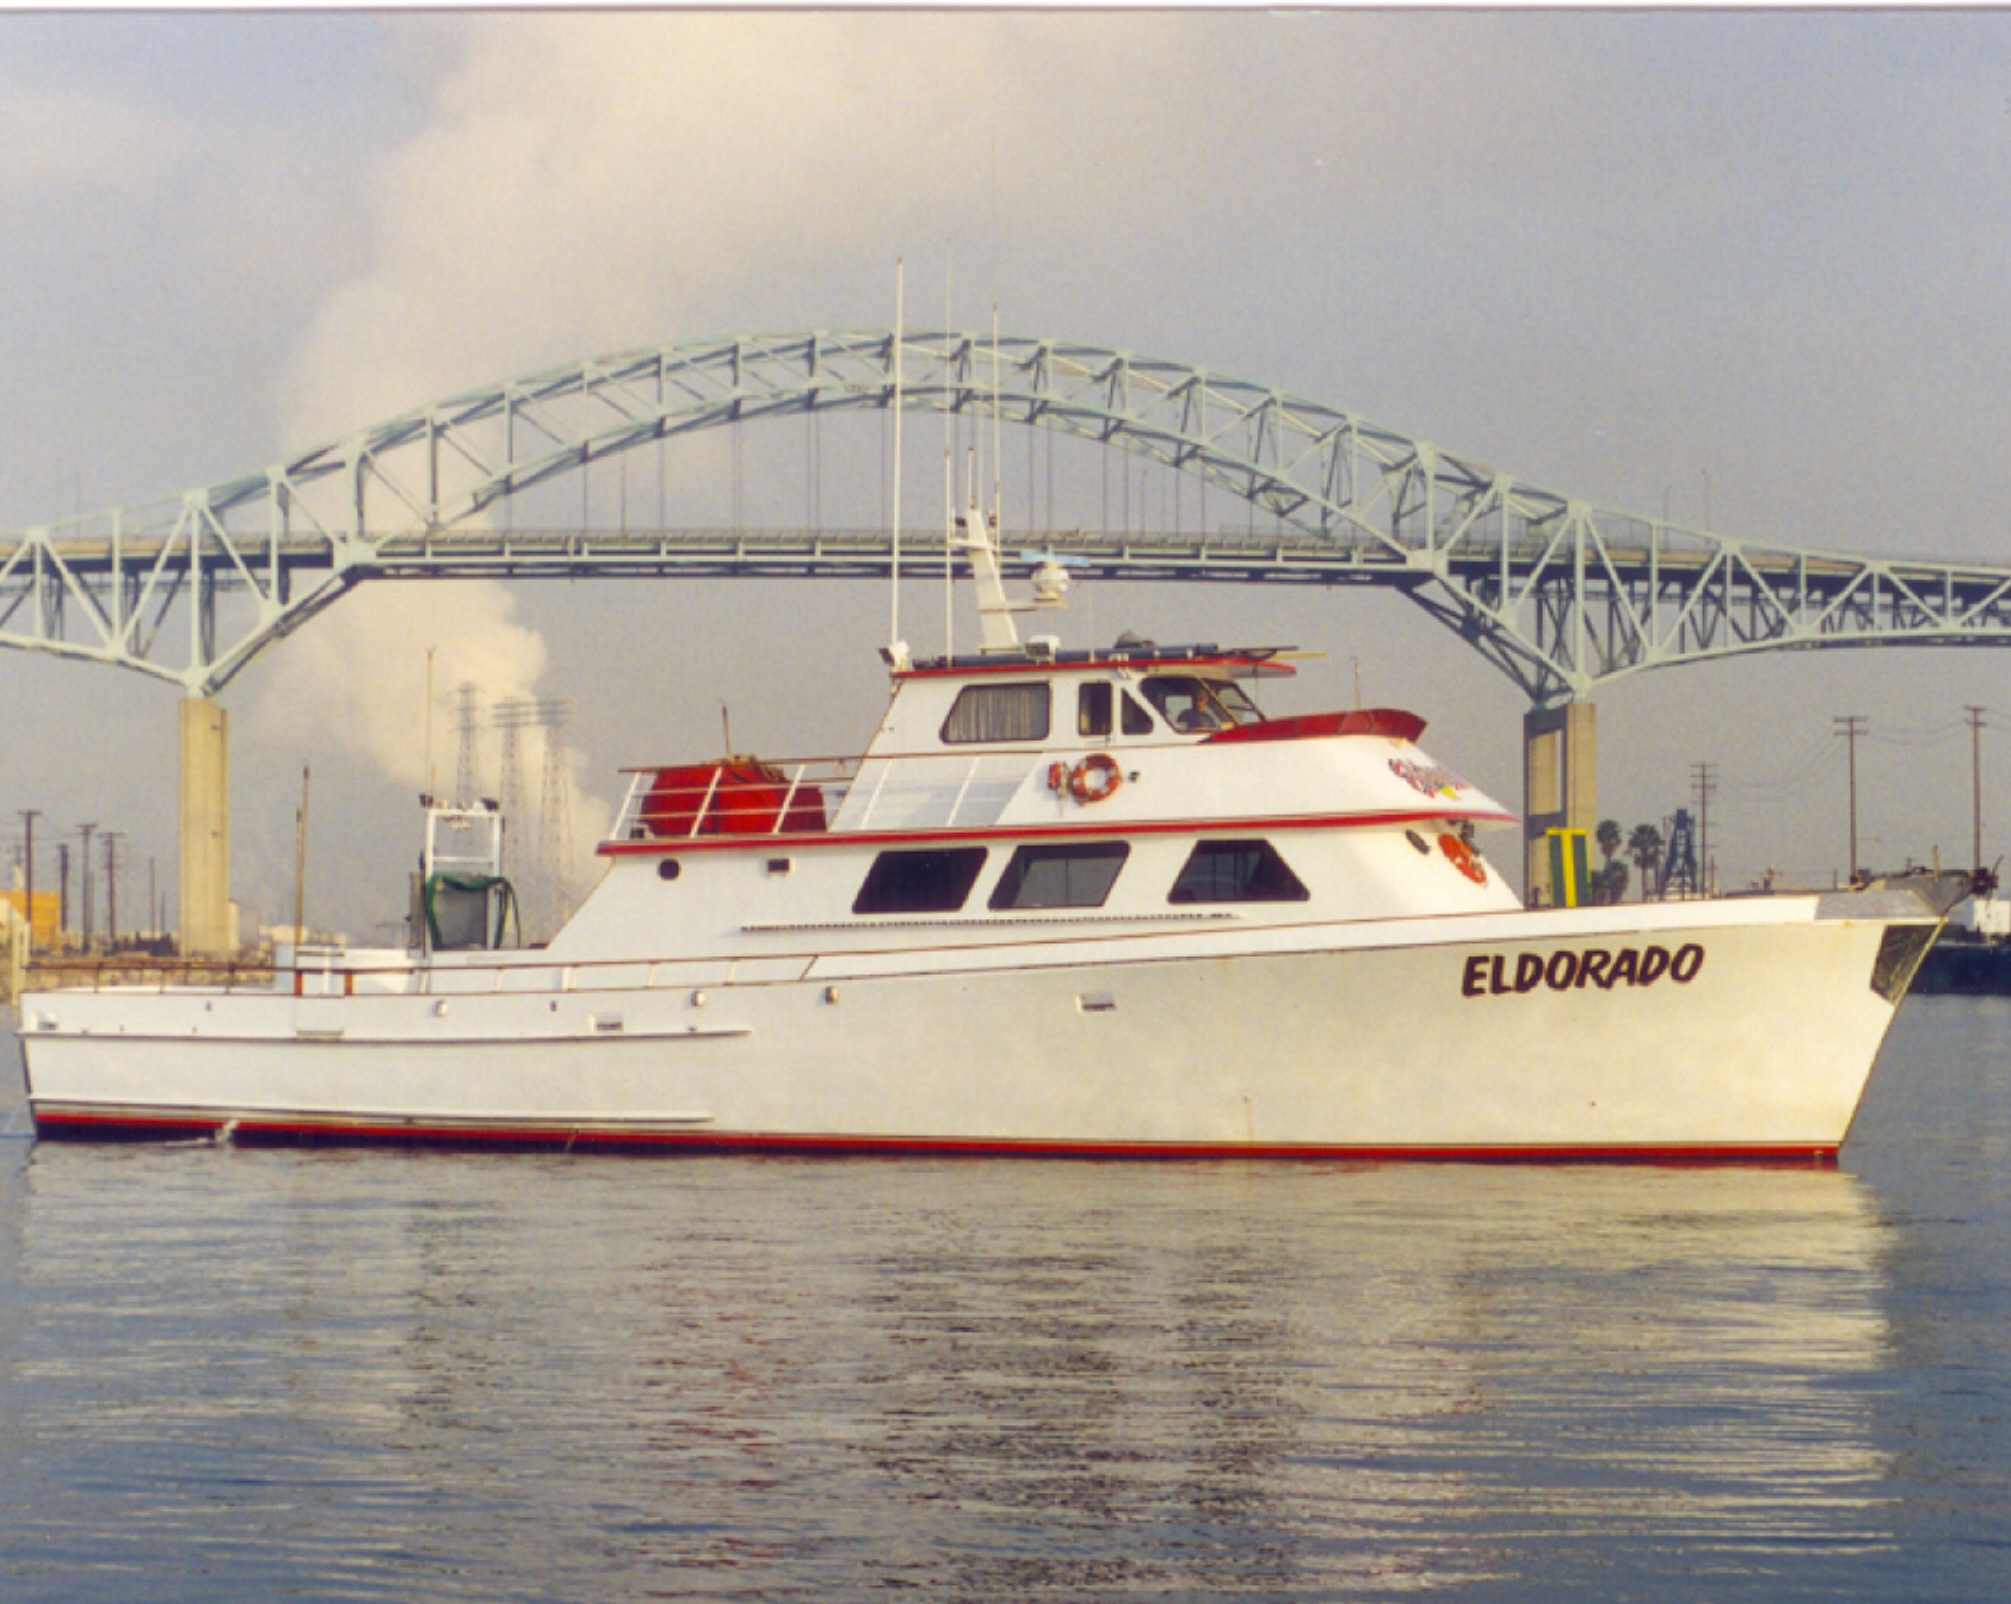 "THE OVERNIGHT BOAT ""ELDORADO,"" IS CURRENTLY ON ""ISLAND FREELANCE"" SCHEDULE.  THEY DEPART NIGHTLY AT 8:30 PM, WITH A PREPAID ONLINE PRICE OF $150 (NON-PREPAID OR WALK-UPS $170)"